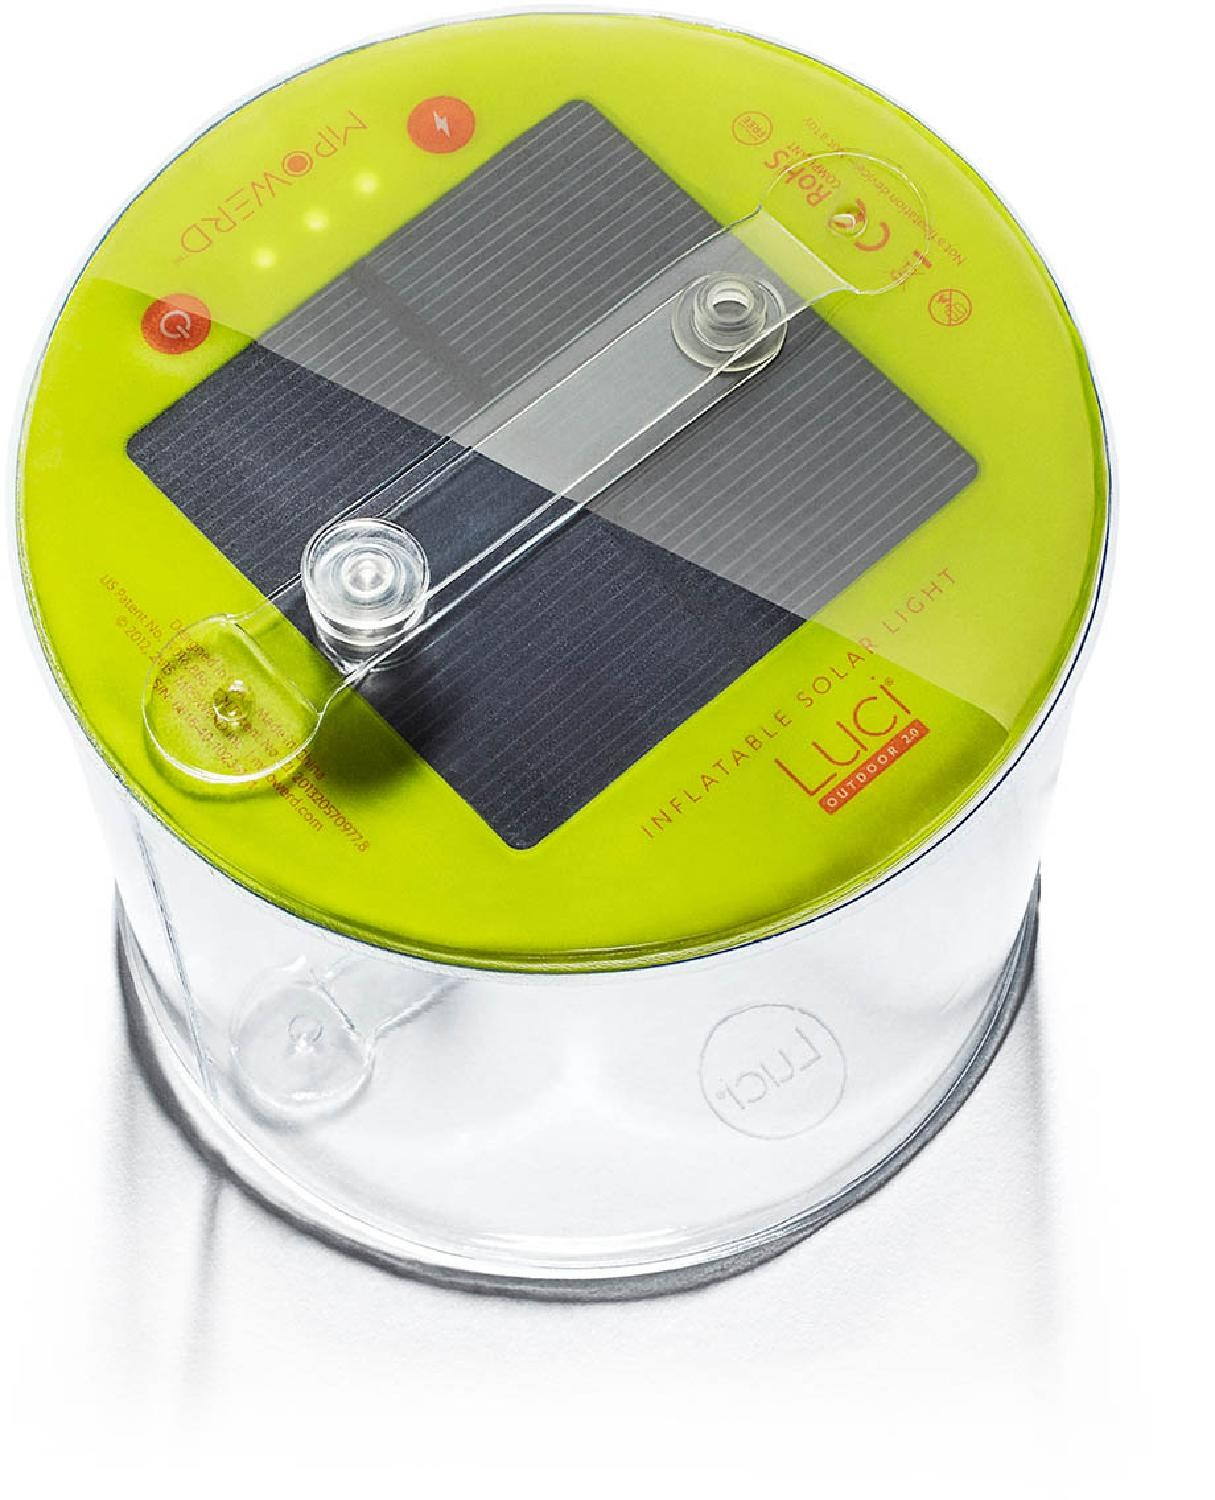 Camping Checklist: Inflatable Solar Lantern